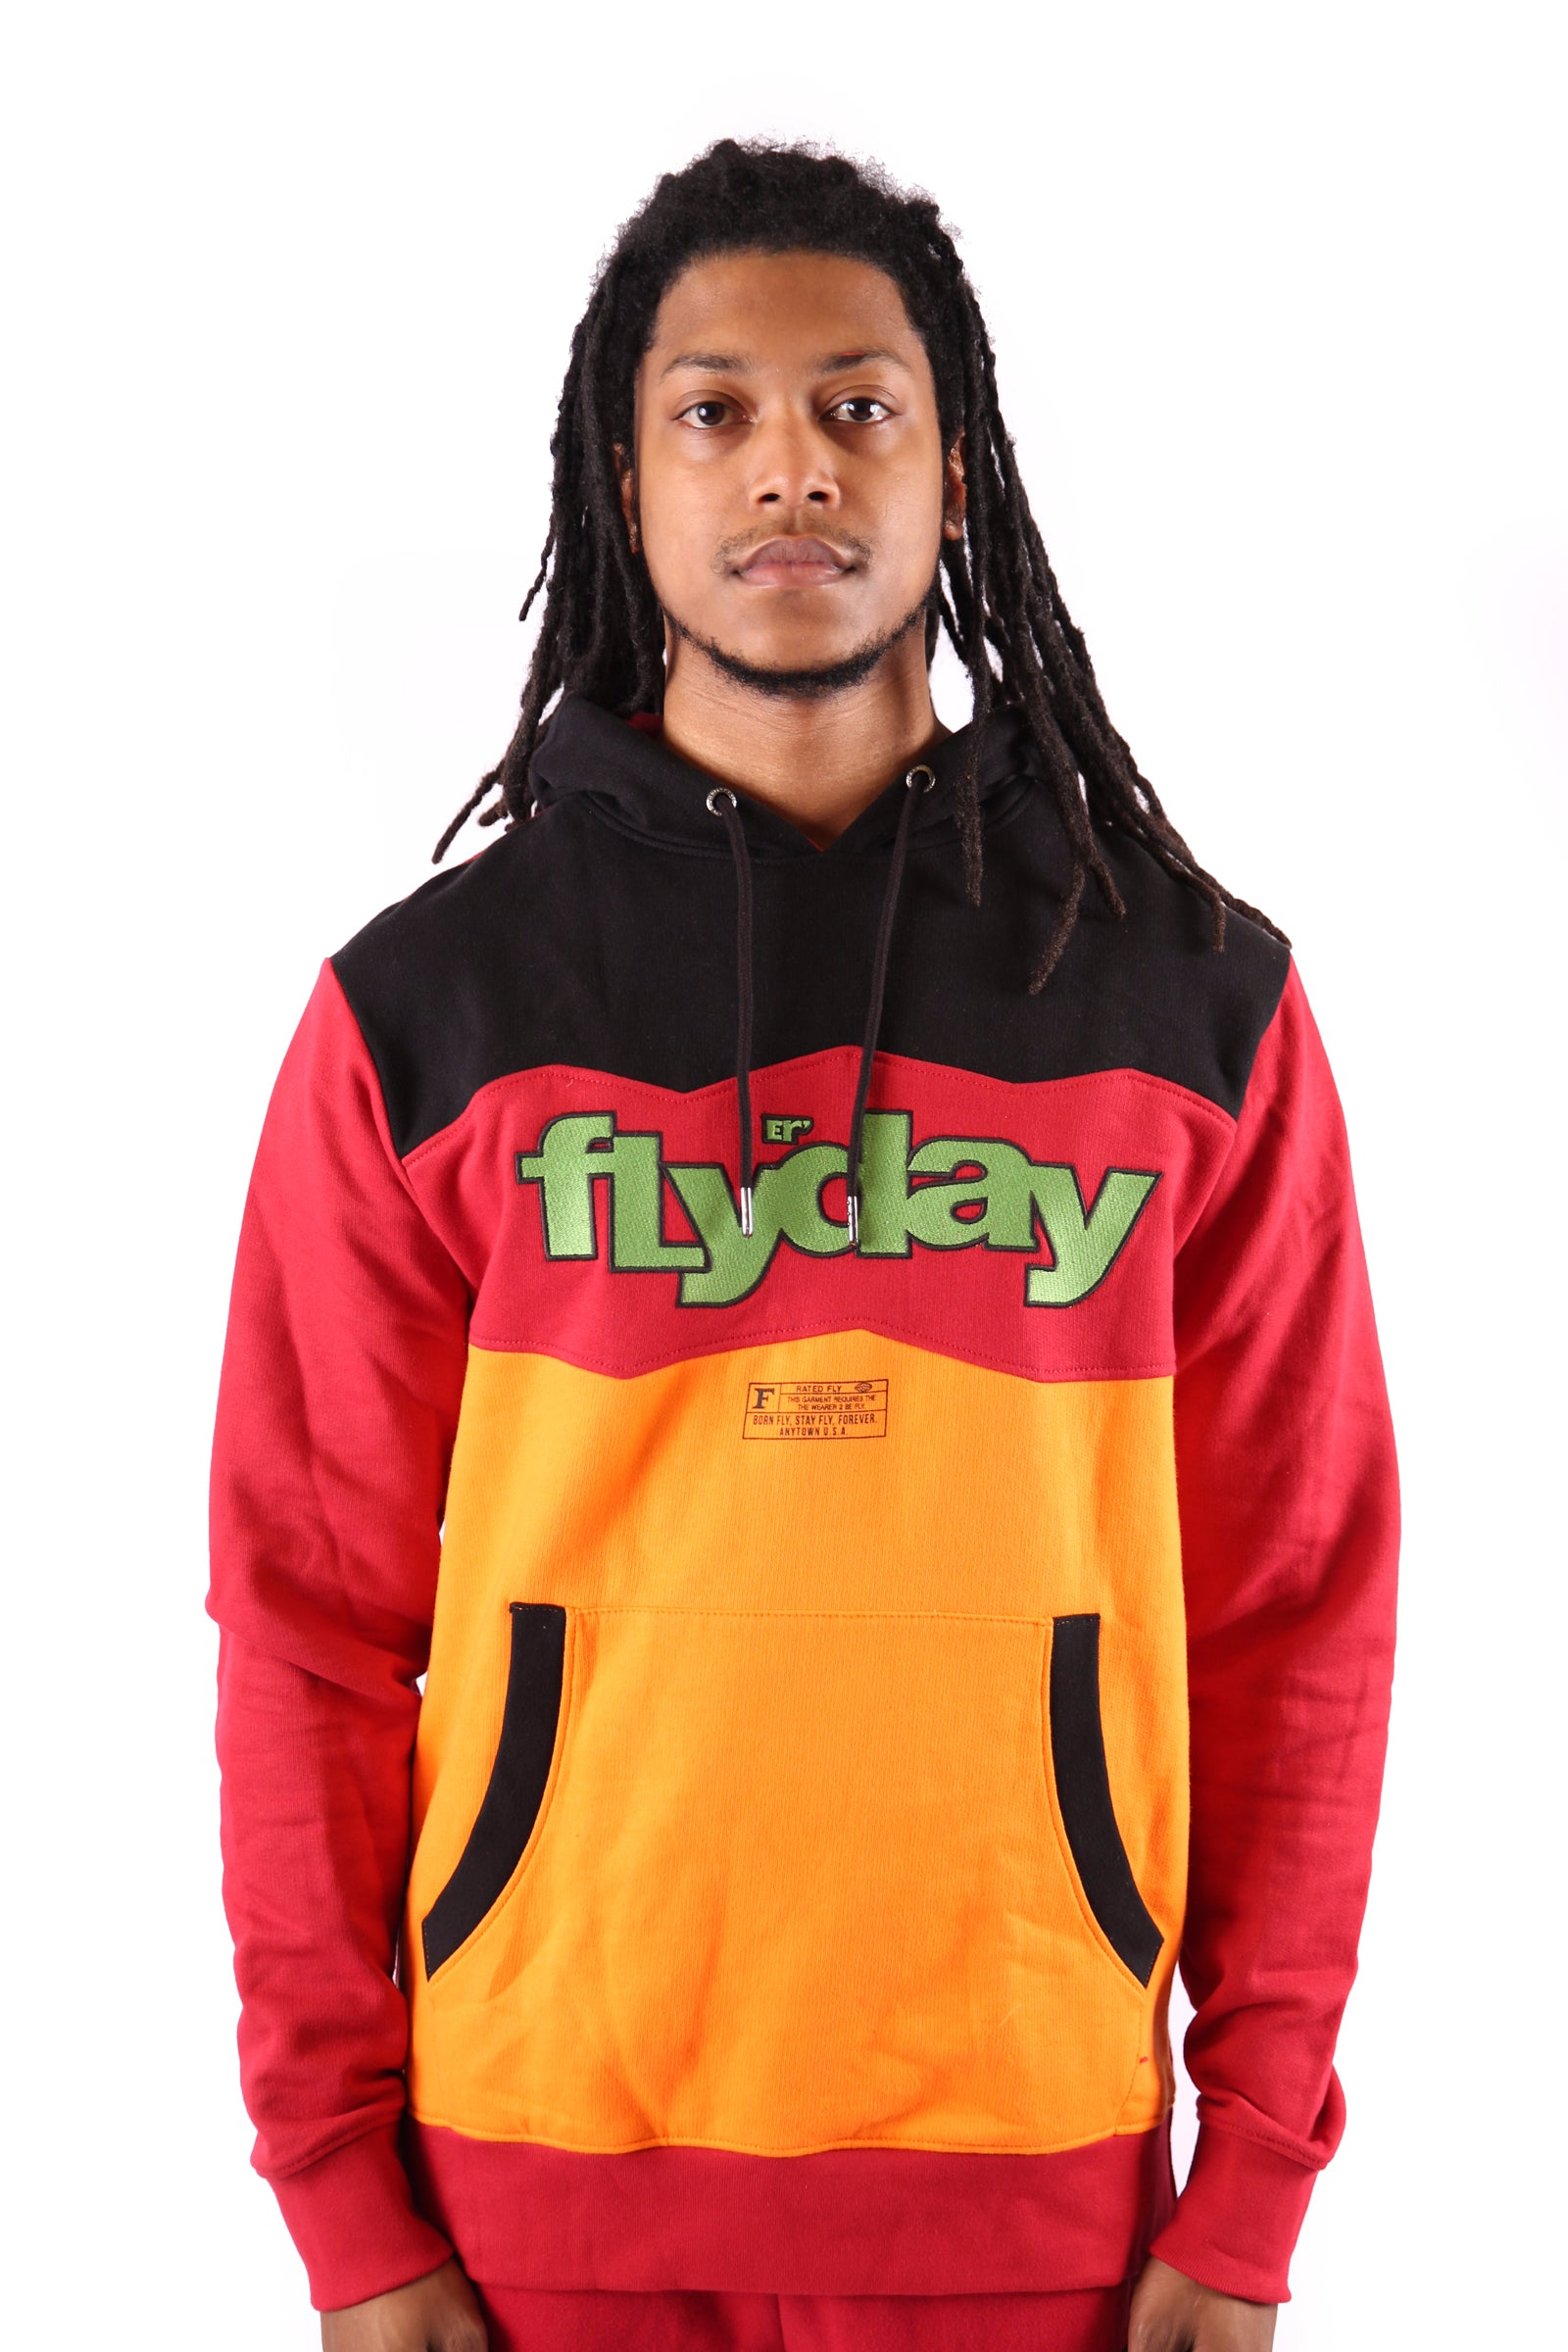 Fly Day Hoodie